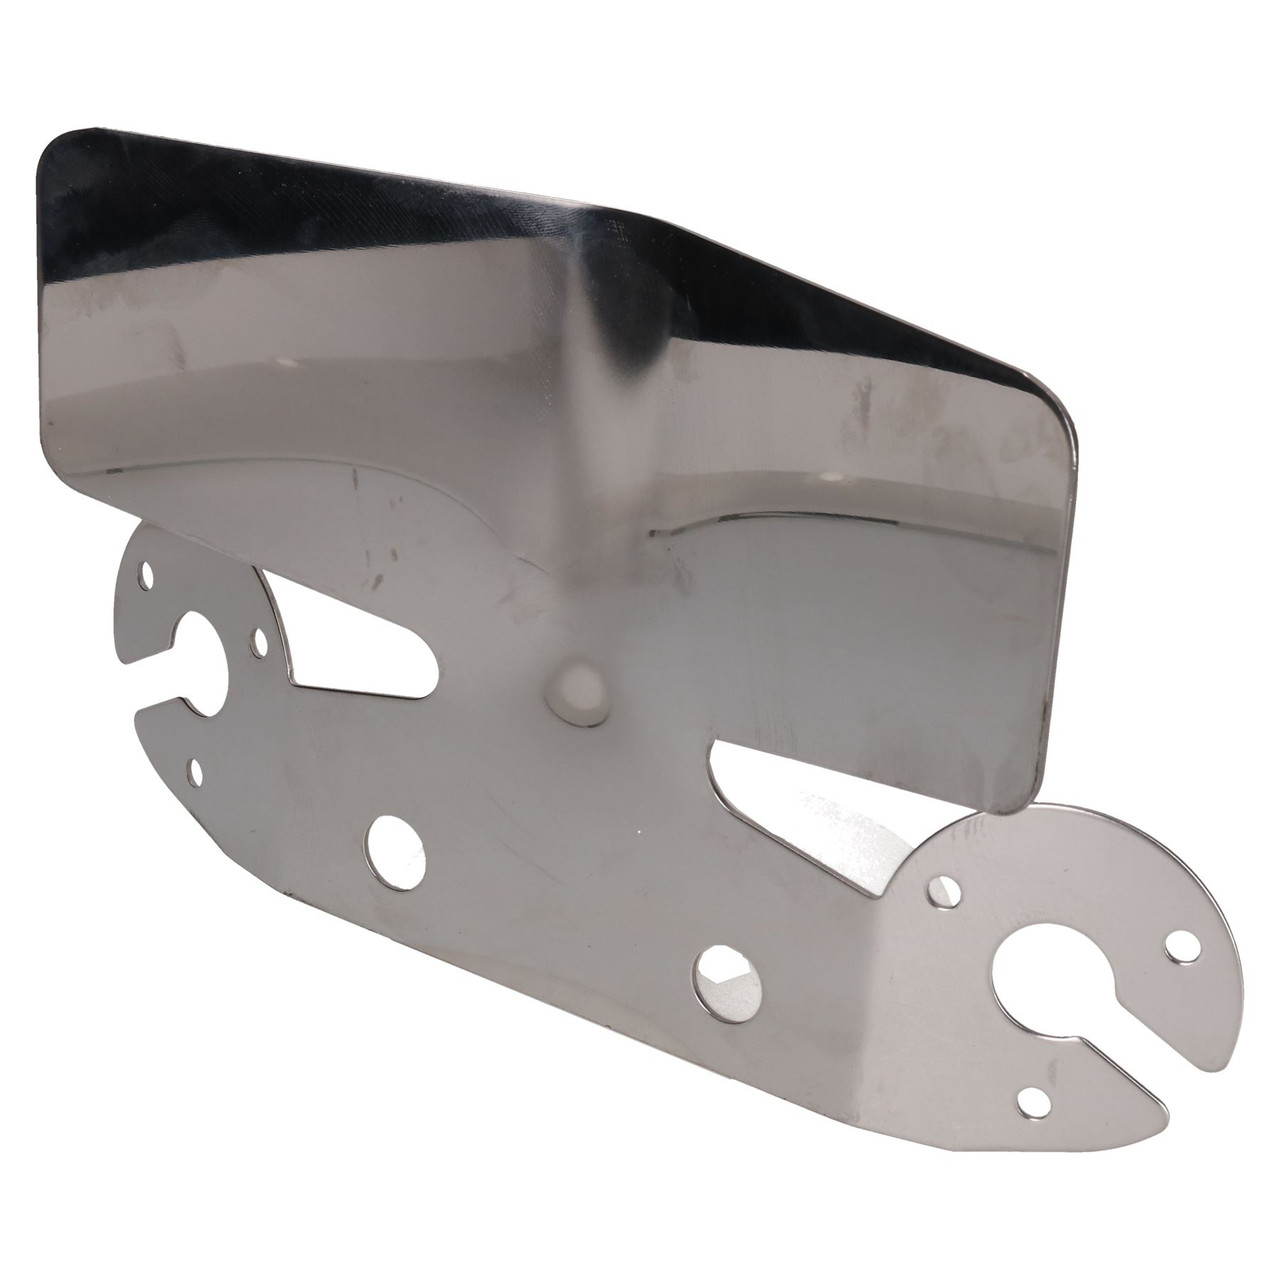 Towbar  Bumper stainless Protector Plate Standard Towball  Socket cover towing